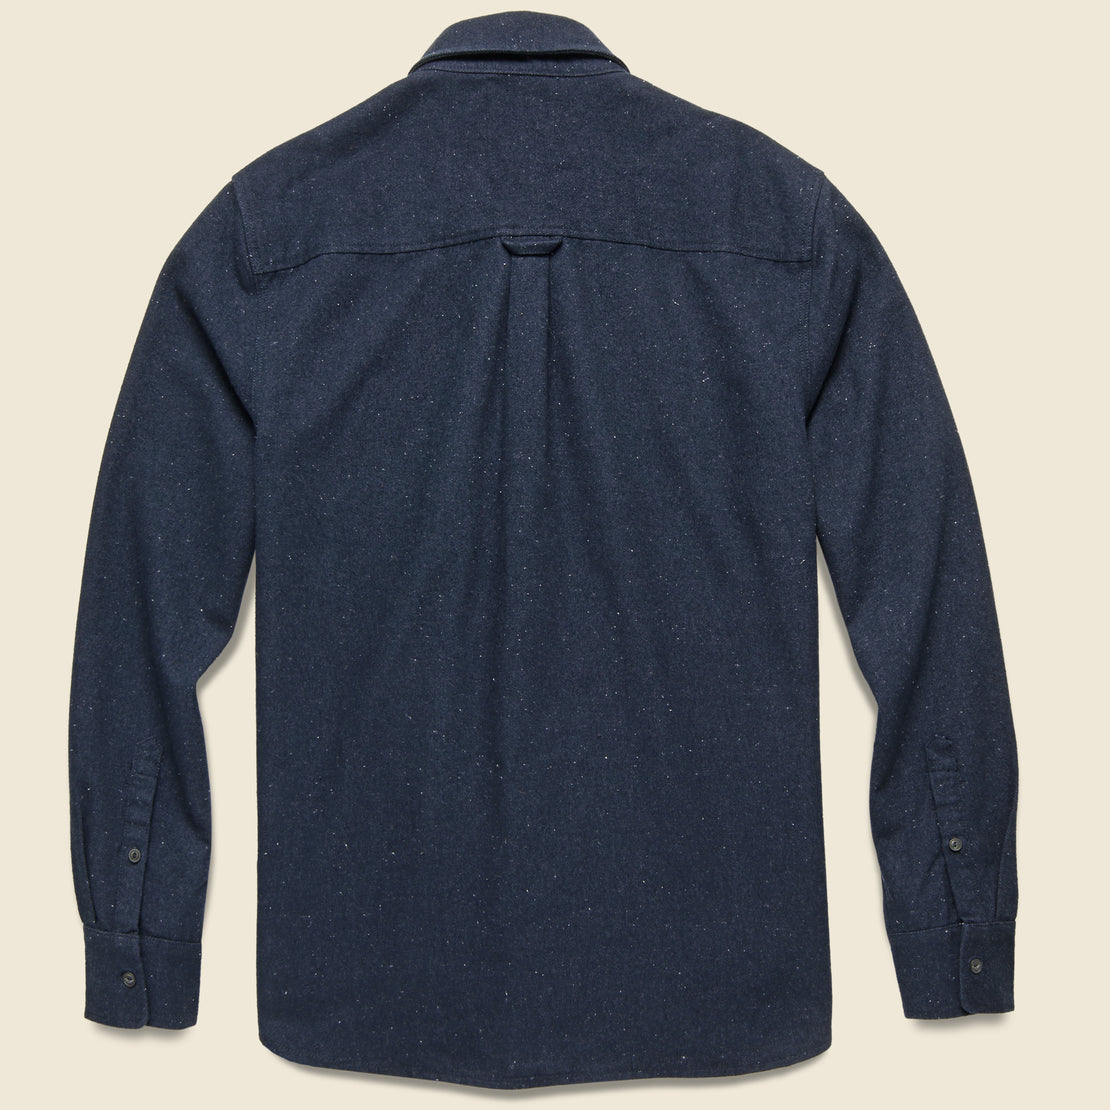 Blackmer Neps Shirt - Navy